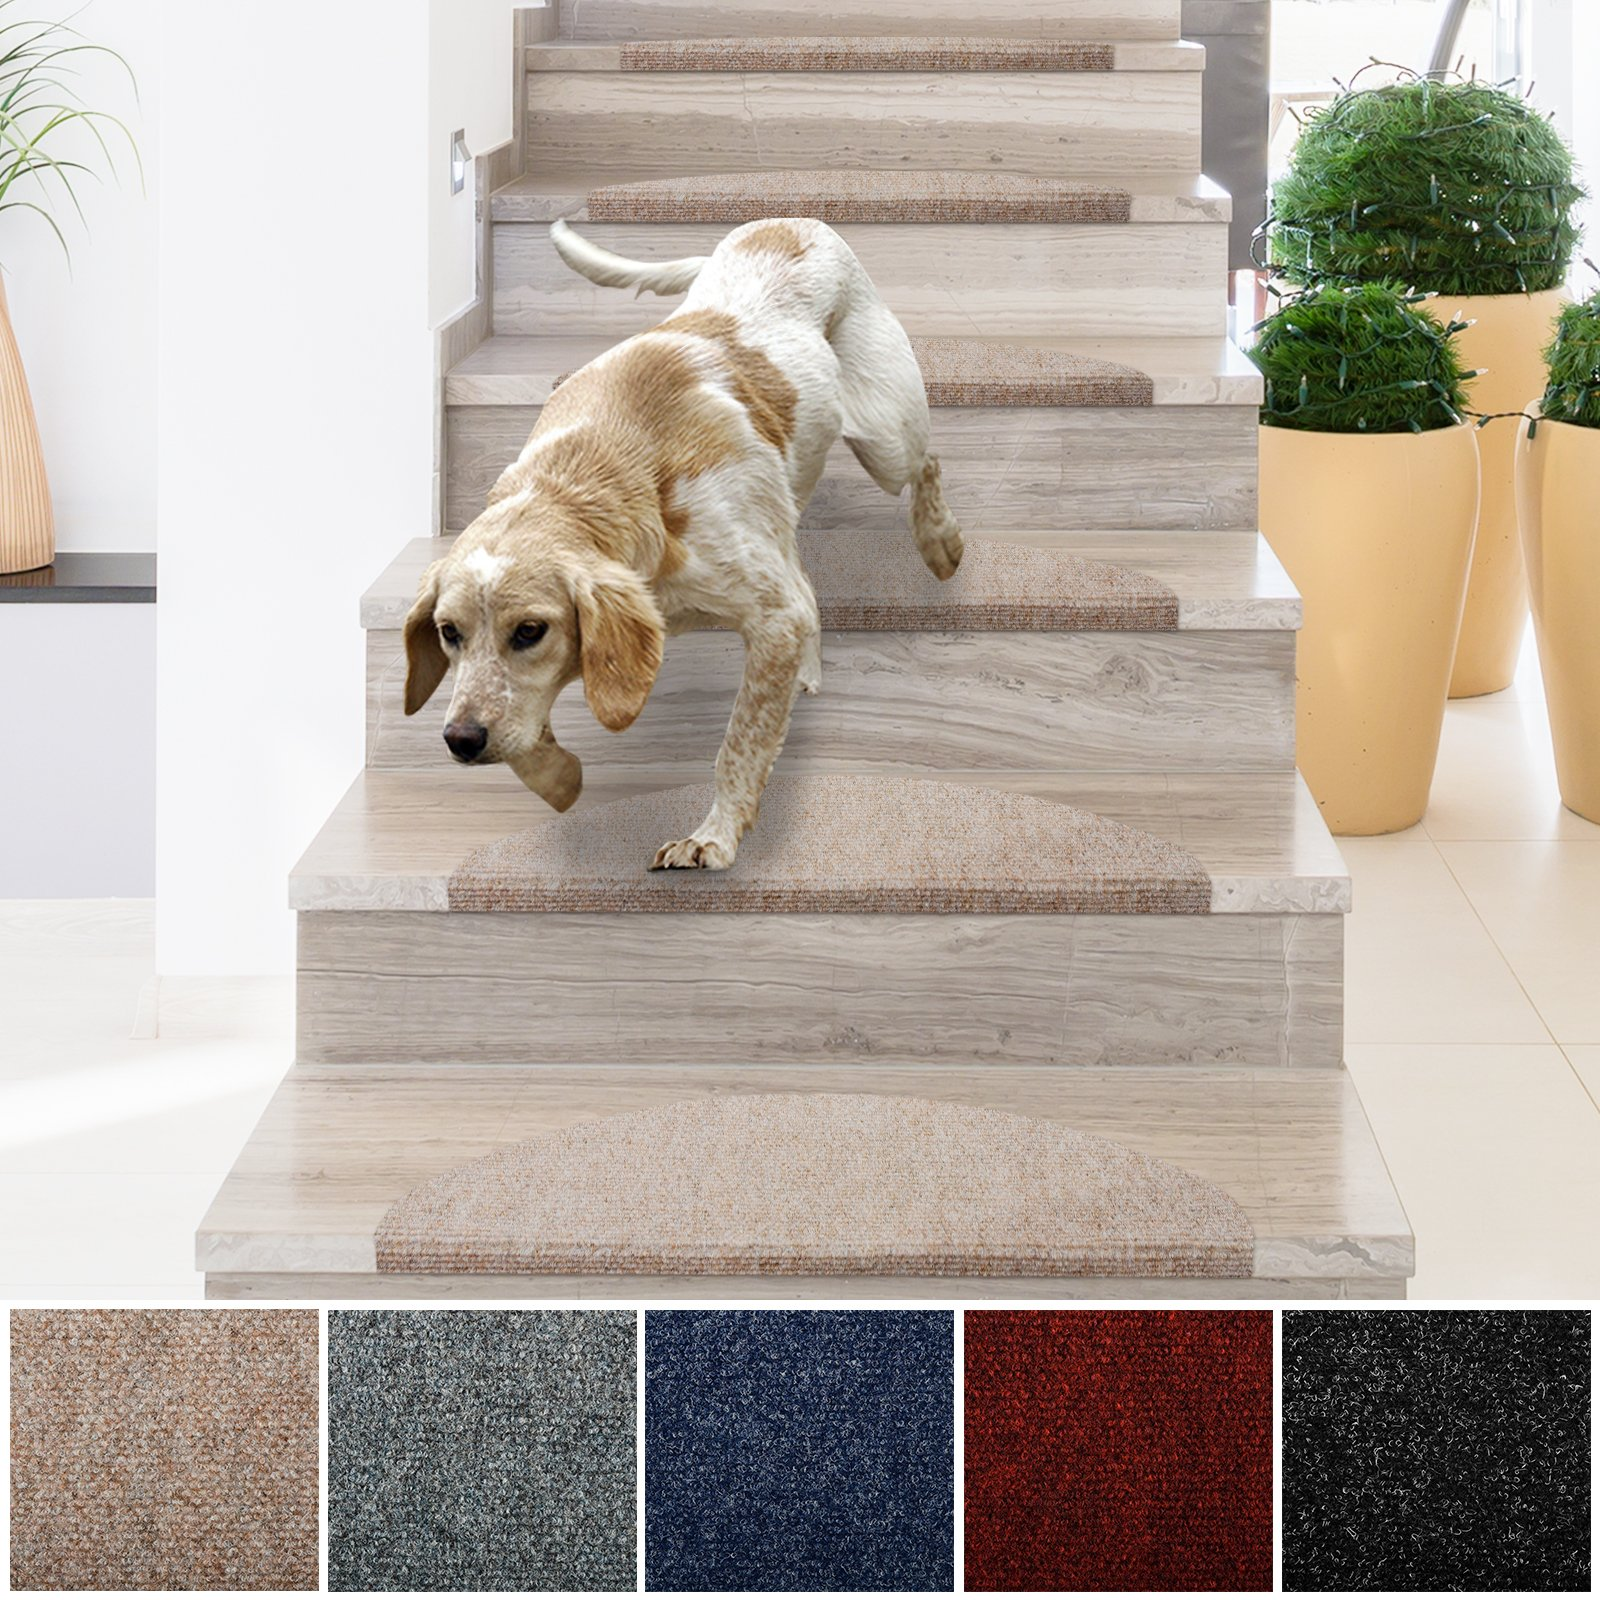 casa pura Stair Treads   Non-Slip Indoor Stair Protectors   Set of 15 Modern Step Mats for Hard Floor Staircase   Multiple Colors   10'' x 26'' (Beige)